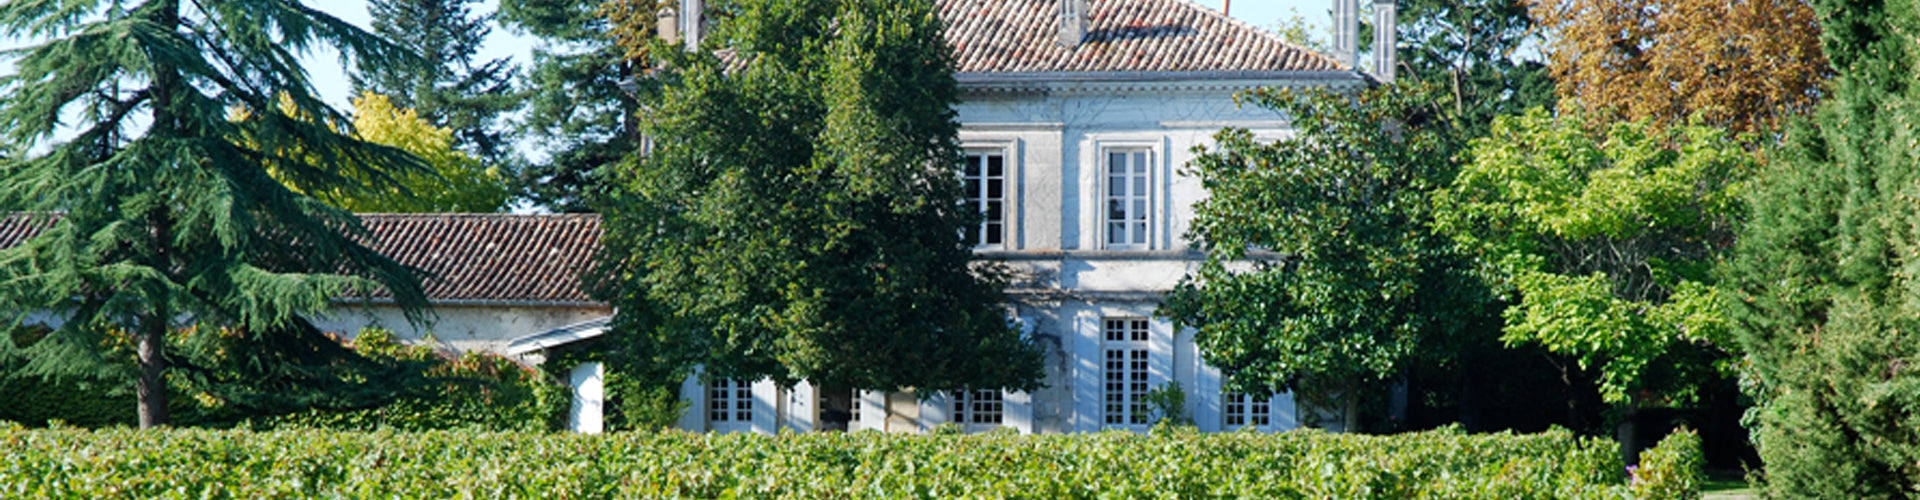 The Château Dutruch Grand Poujeaux with vineyards to the front